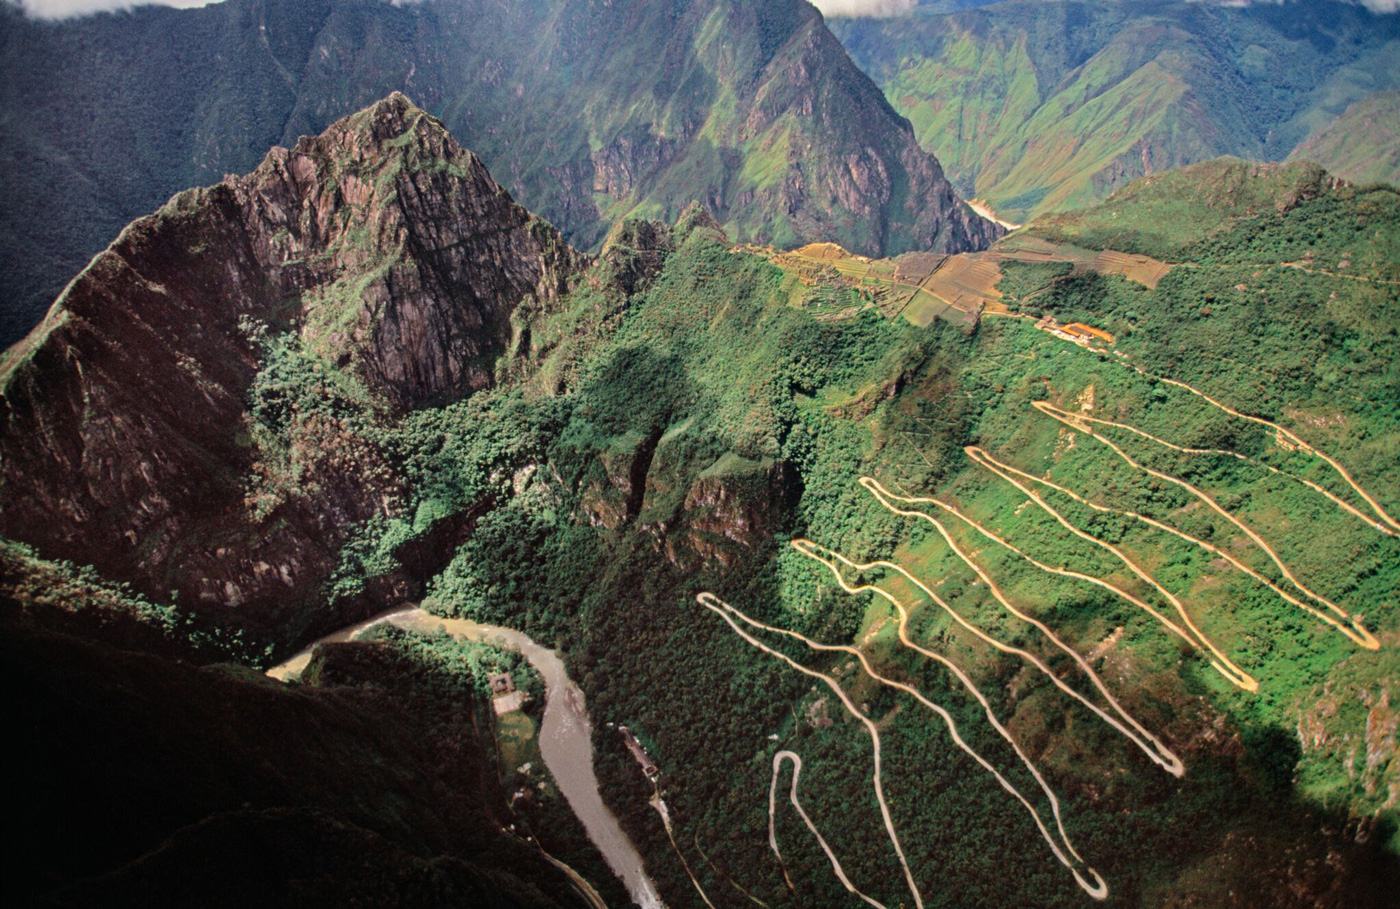 An aerial view of a switchback road leading up to Machu Picchu, Peru.